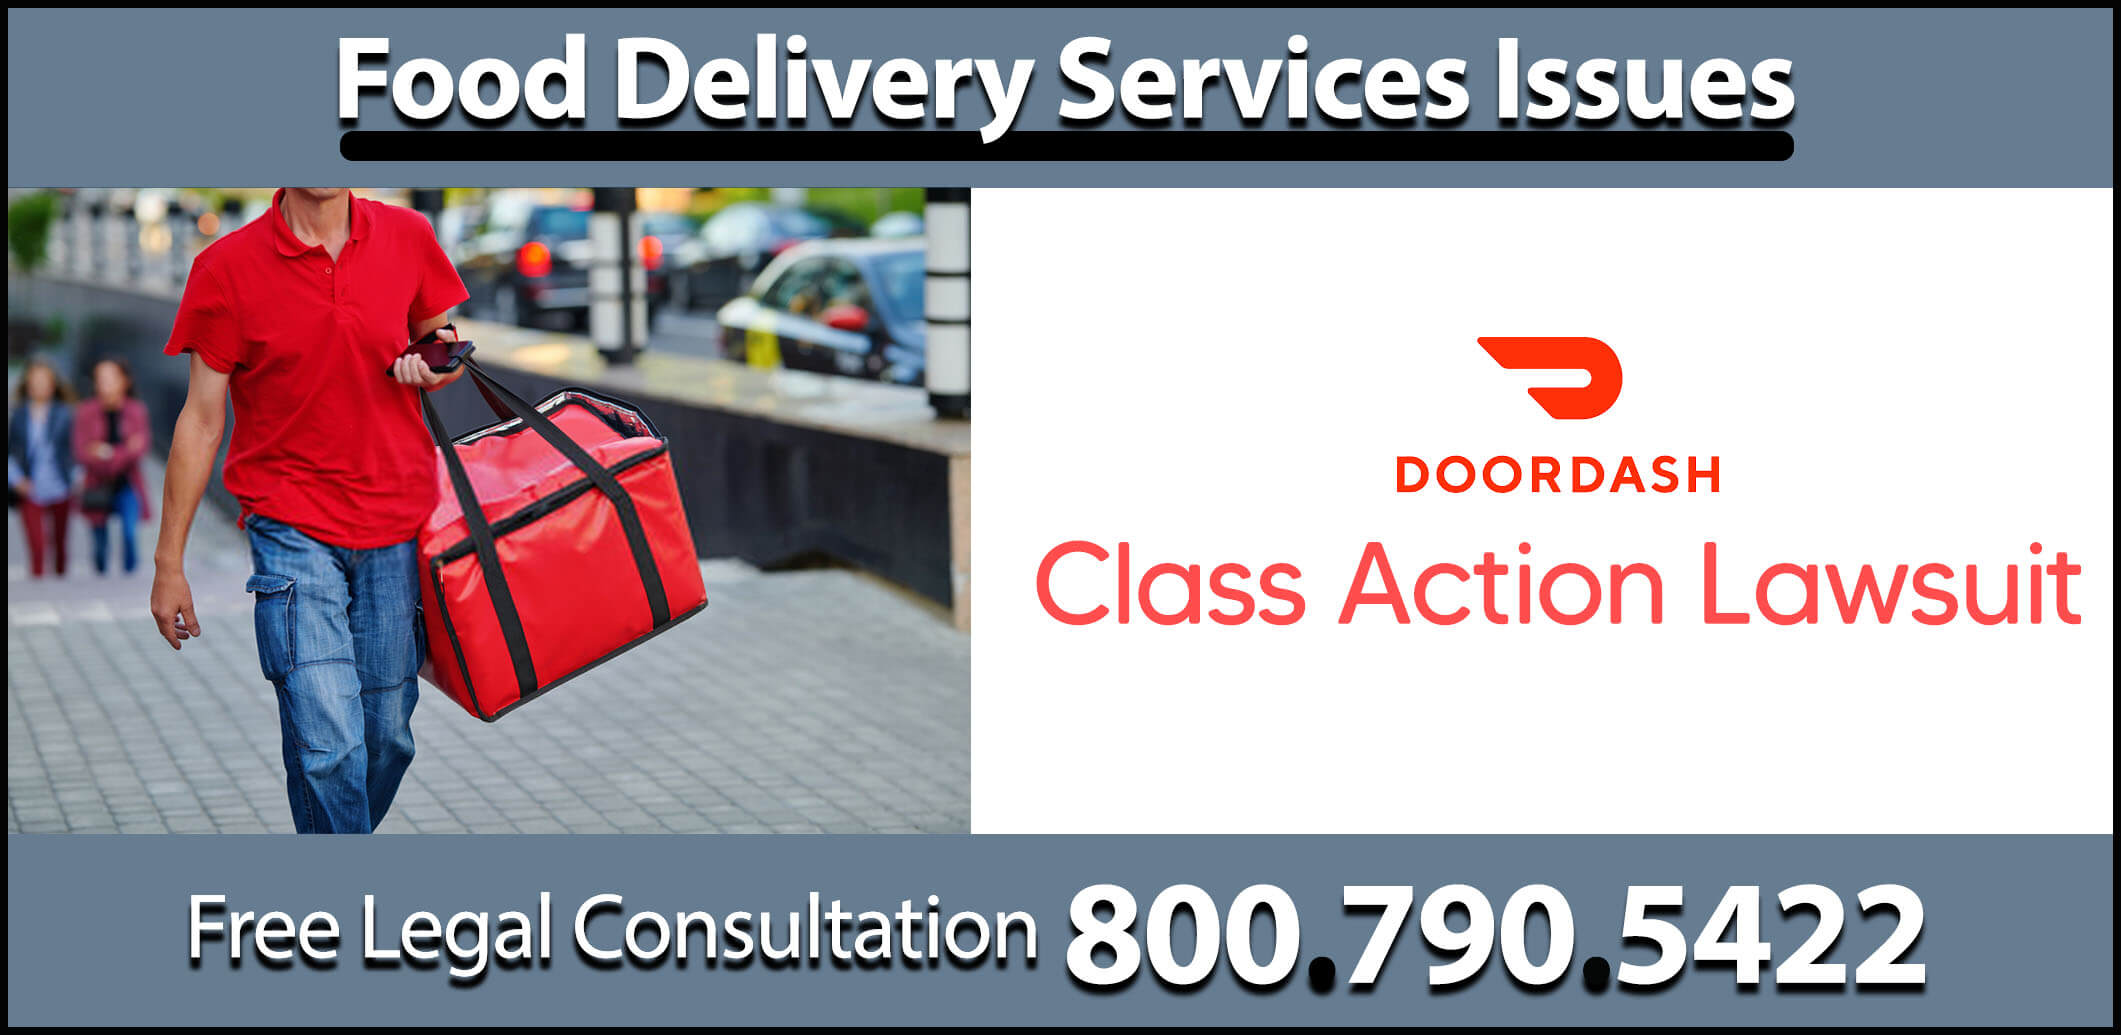 doordash class action lawsuit food delivery dissatisfied lawyer los angeles compensation sue